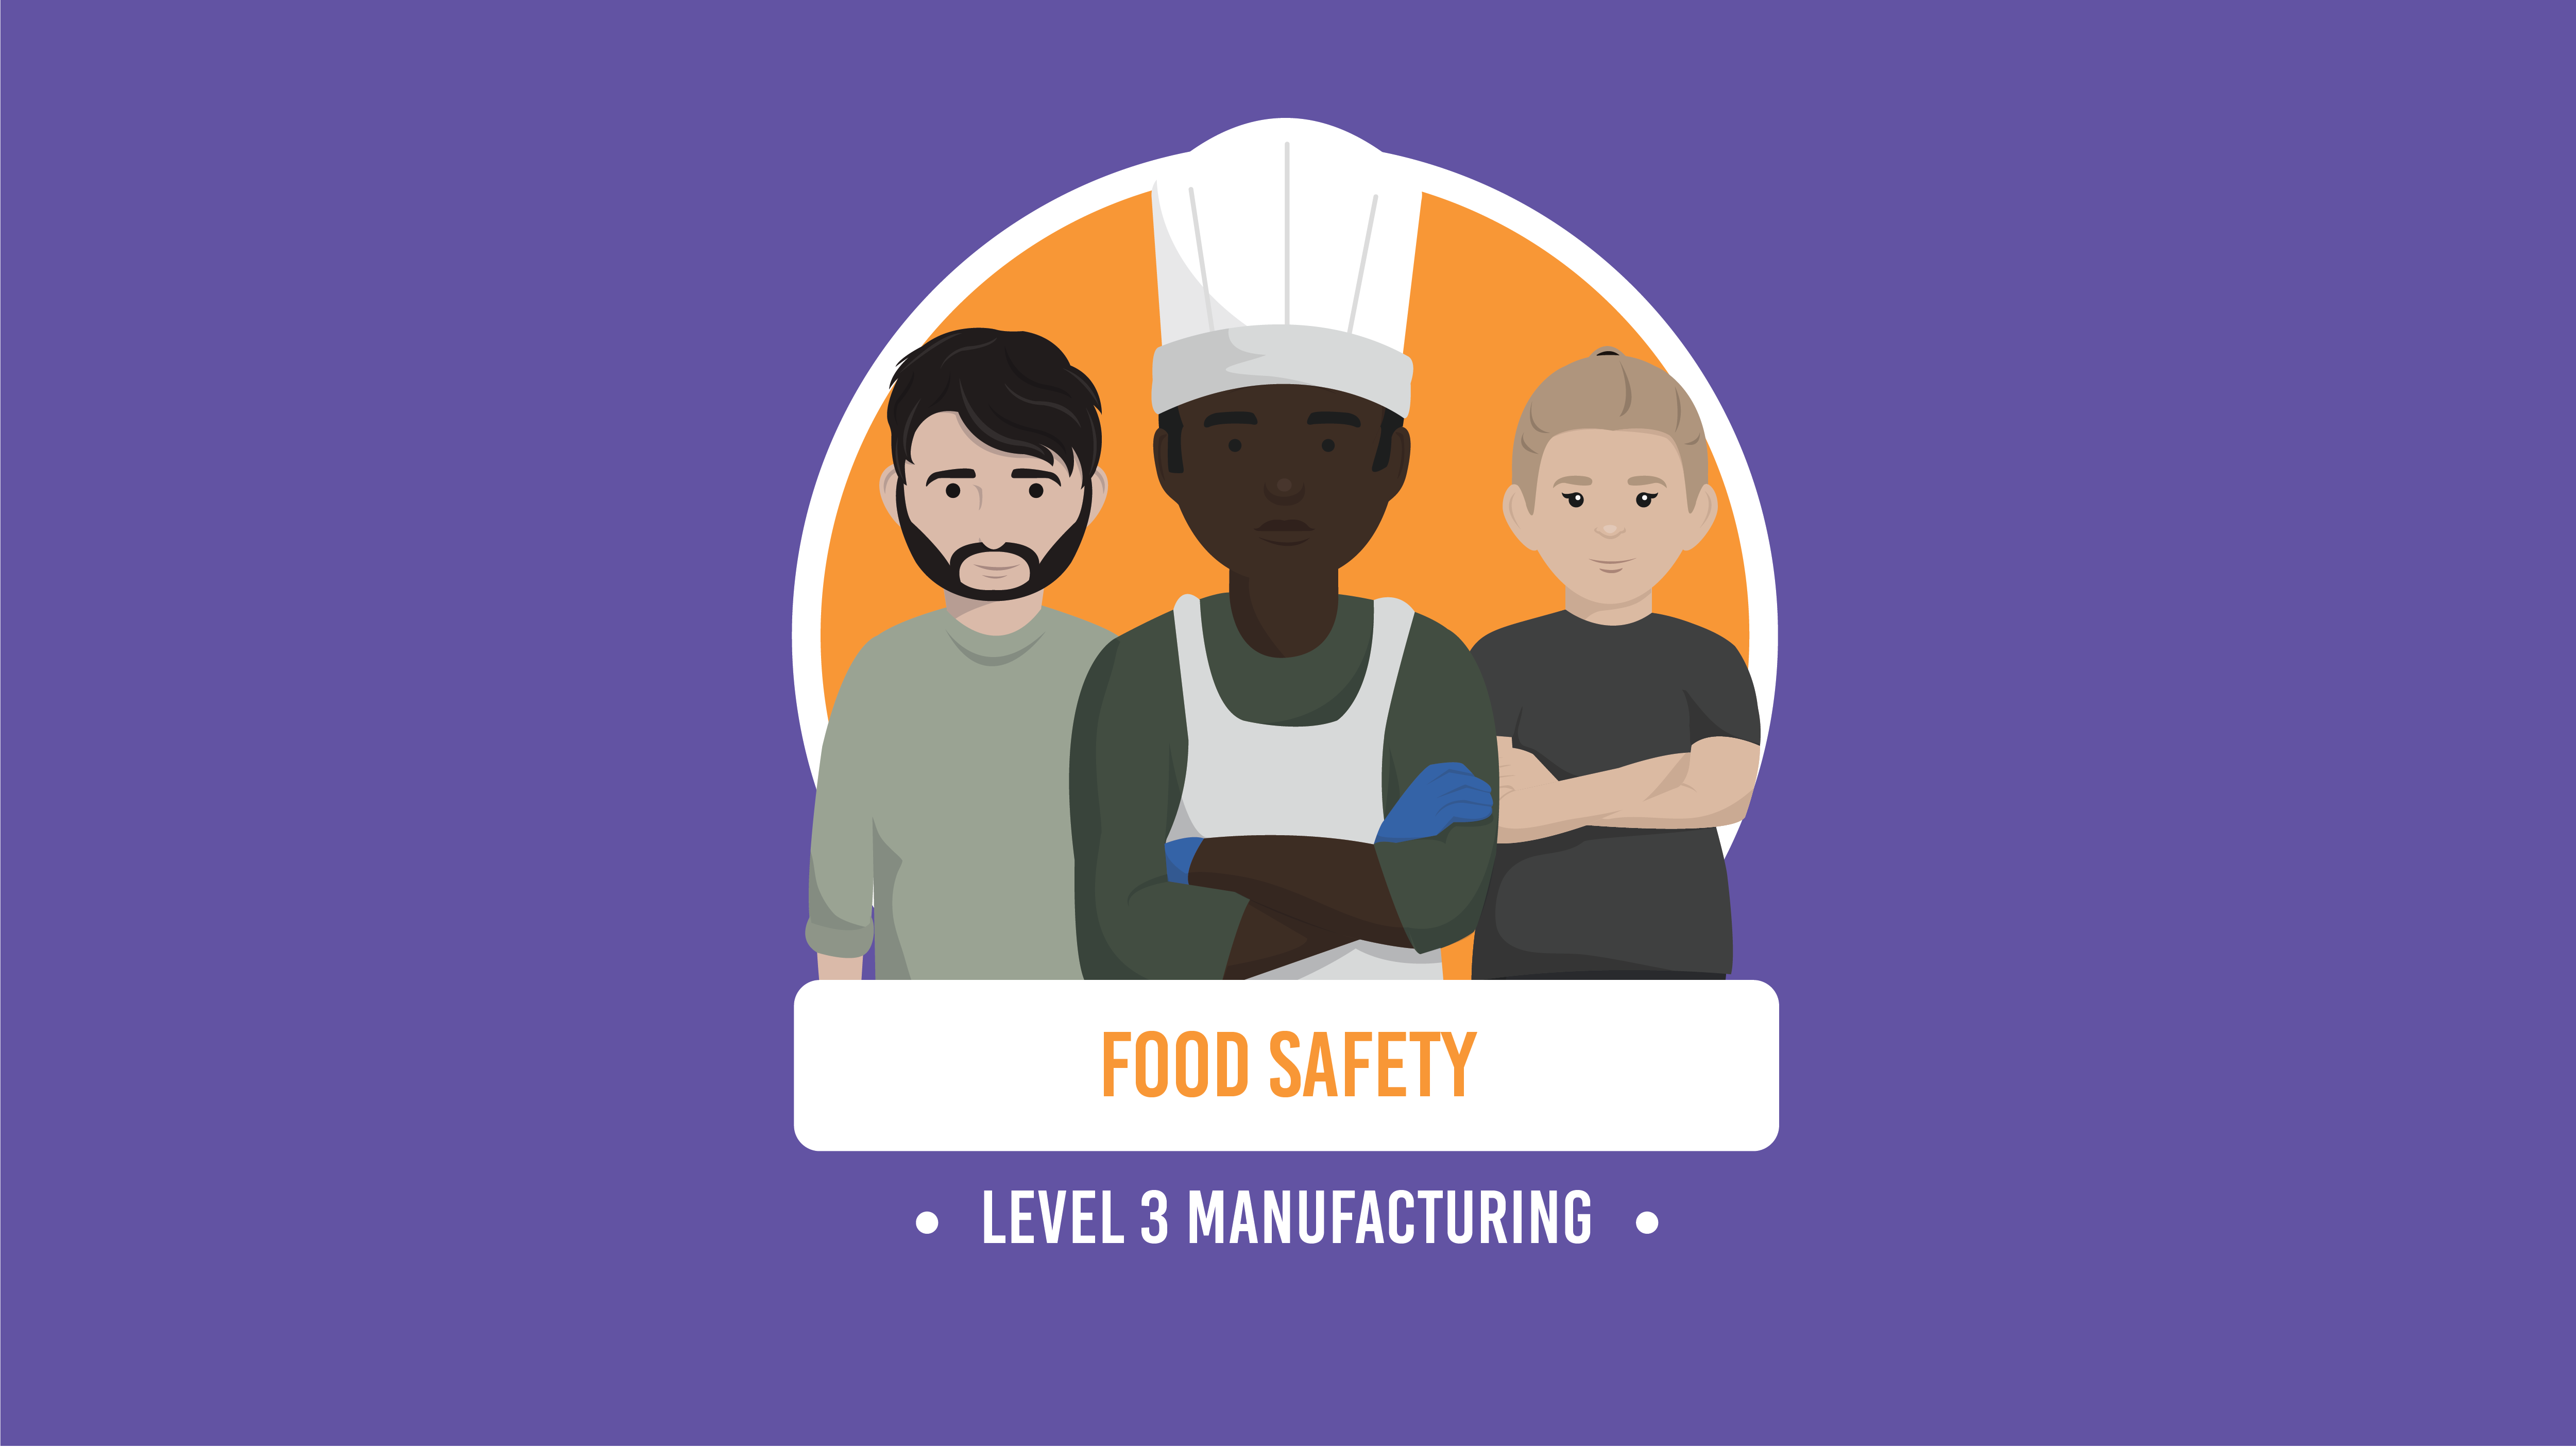 Food Hygiene Level 3 for Manufacturing